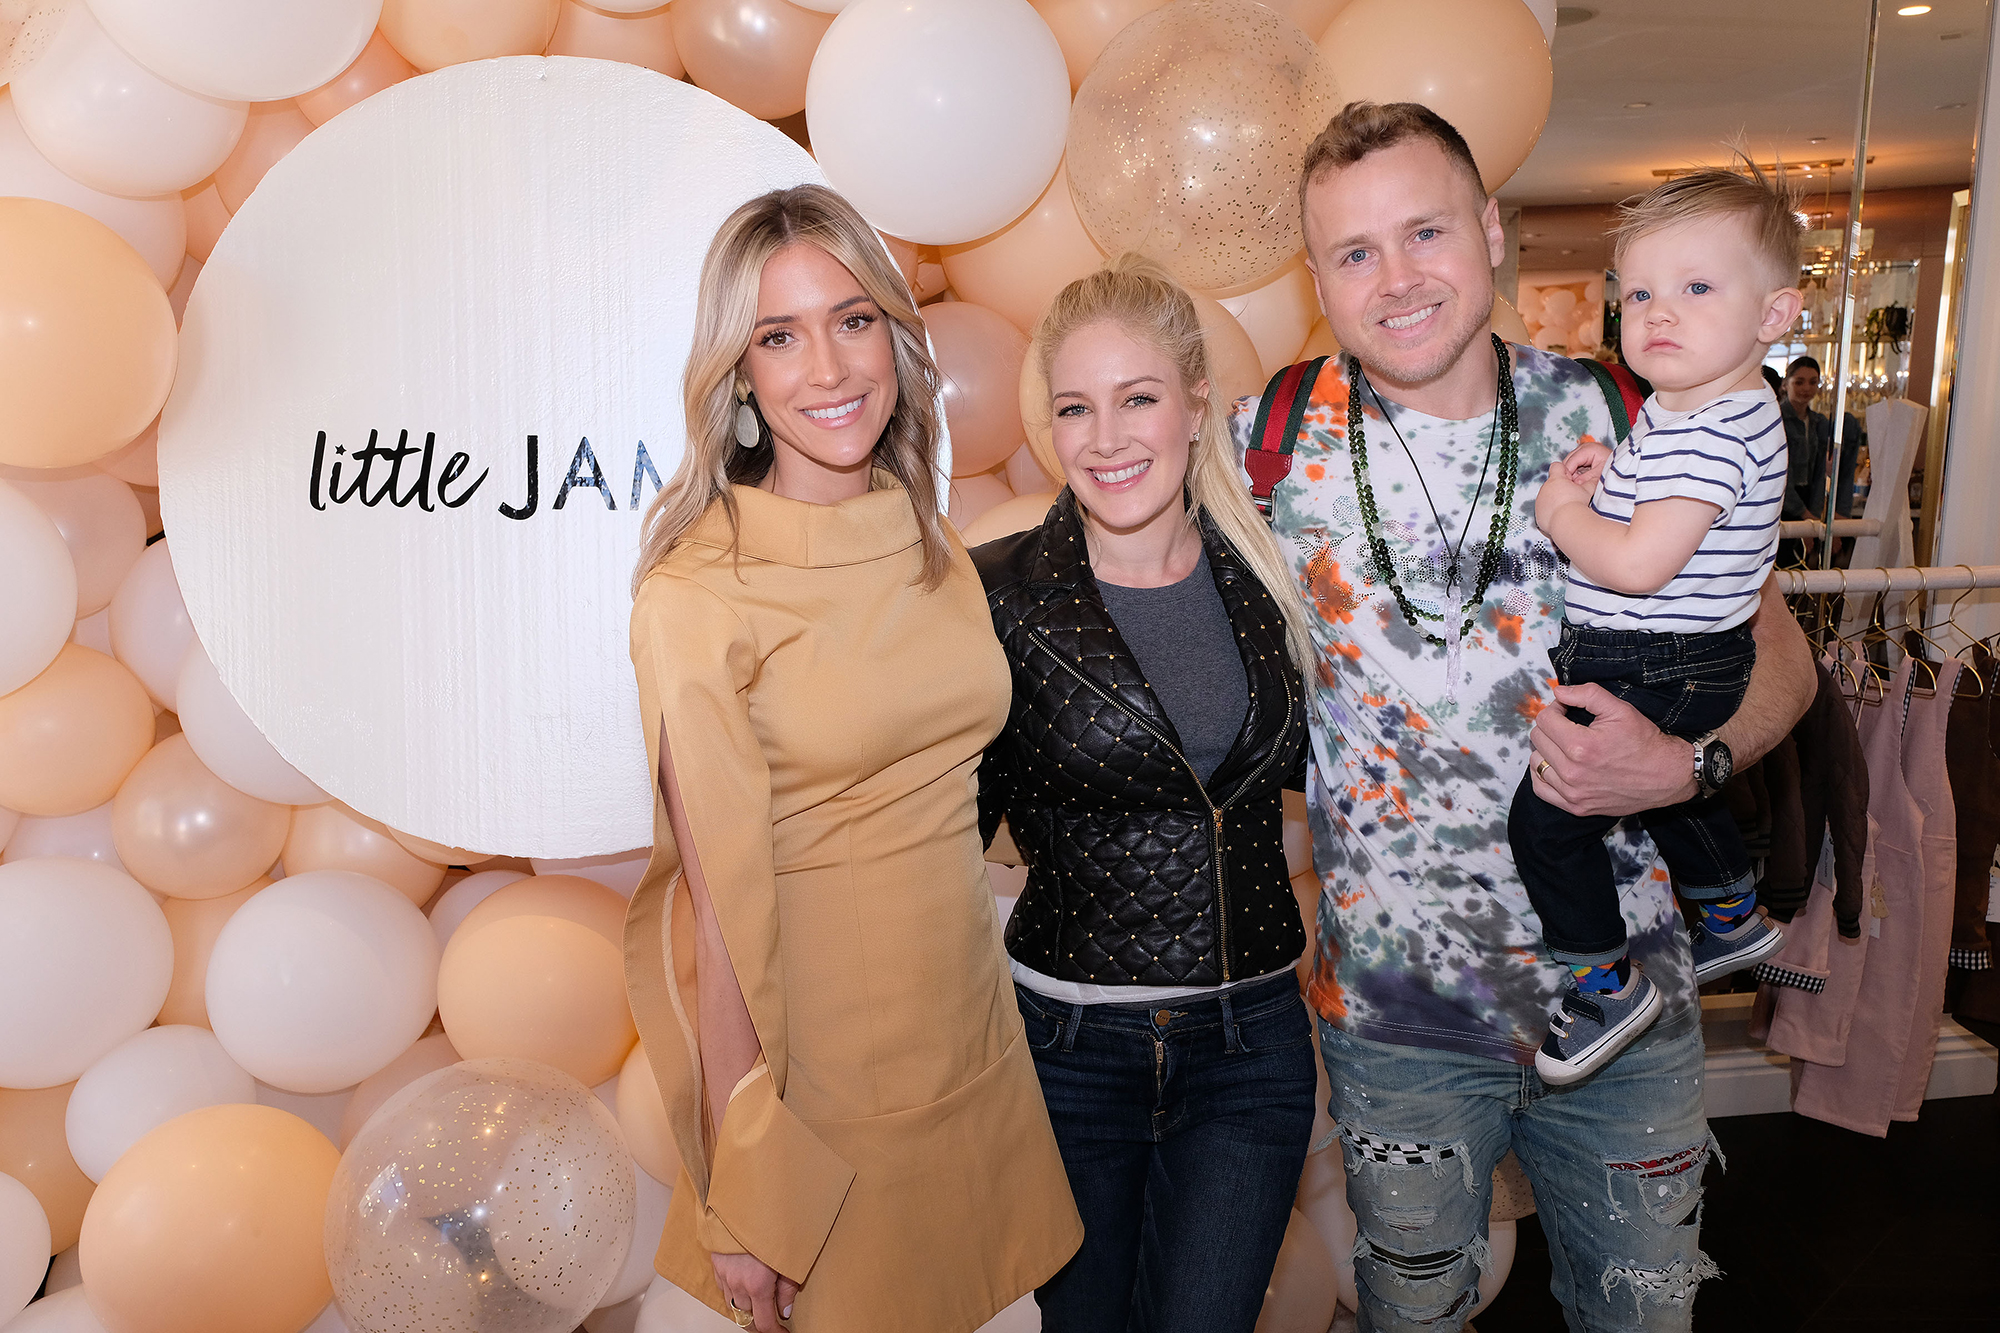 Kristin Cavallari Admits Her Husband Jay Cutler Is the 'Stricter' Parent While She Likes to 'Let Kids Be Kids' - Kristin Cavallari, Heidi Pratt, Spencer Pratt and Gunner Pratt at the 'Little James Pop Up' shop launch in Pacific Palisades on March 16, 2019.